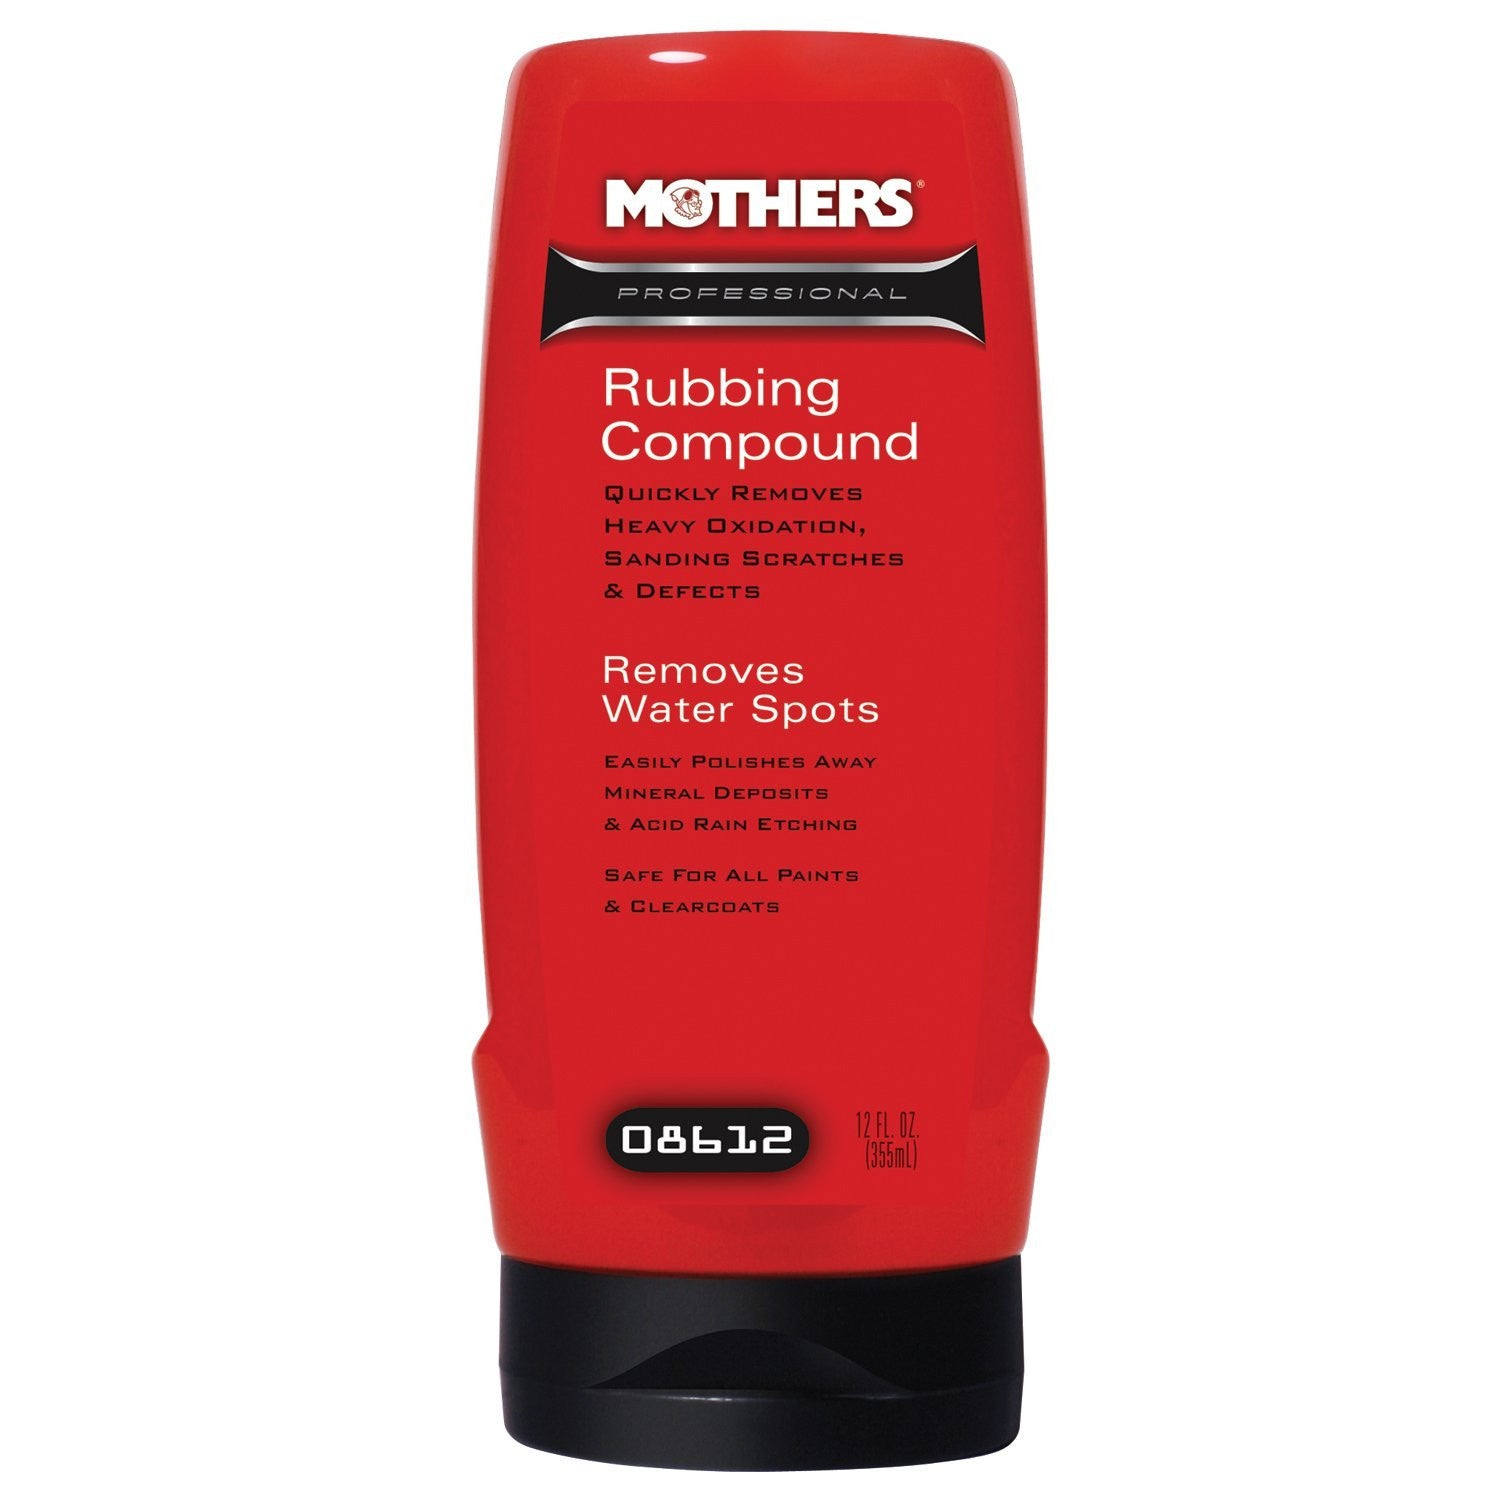 MOTHERS Professional Rubbing Compound 12 OZ